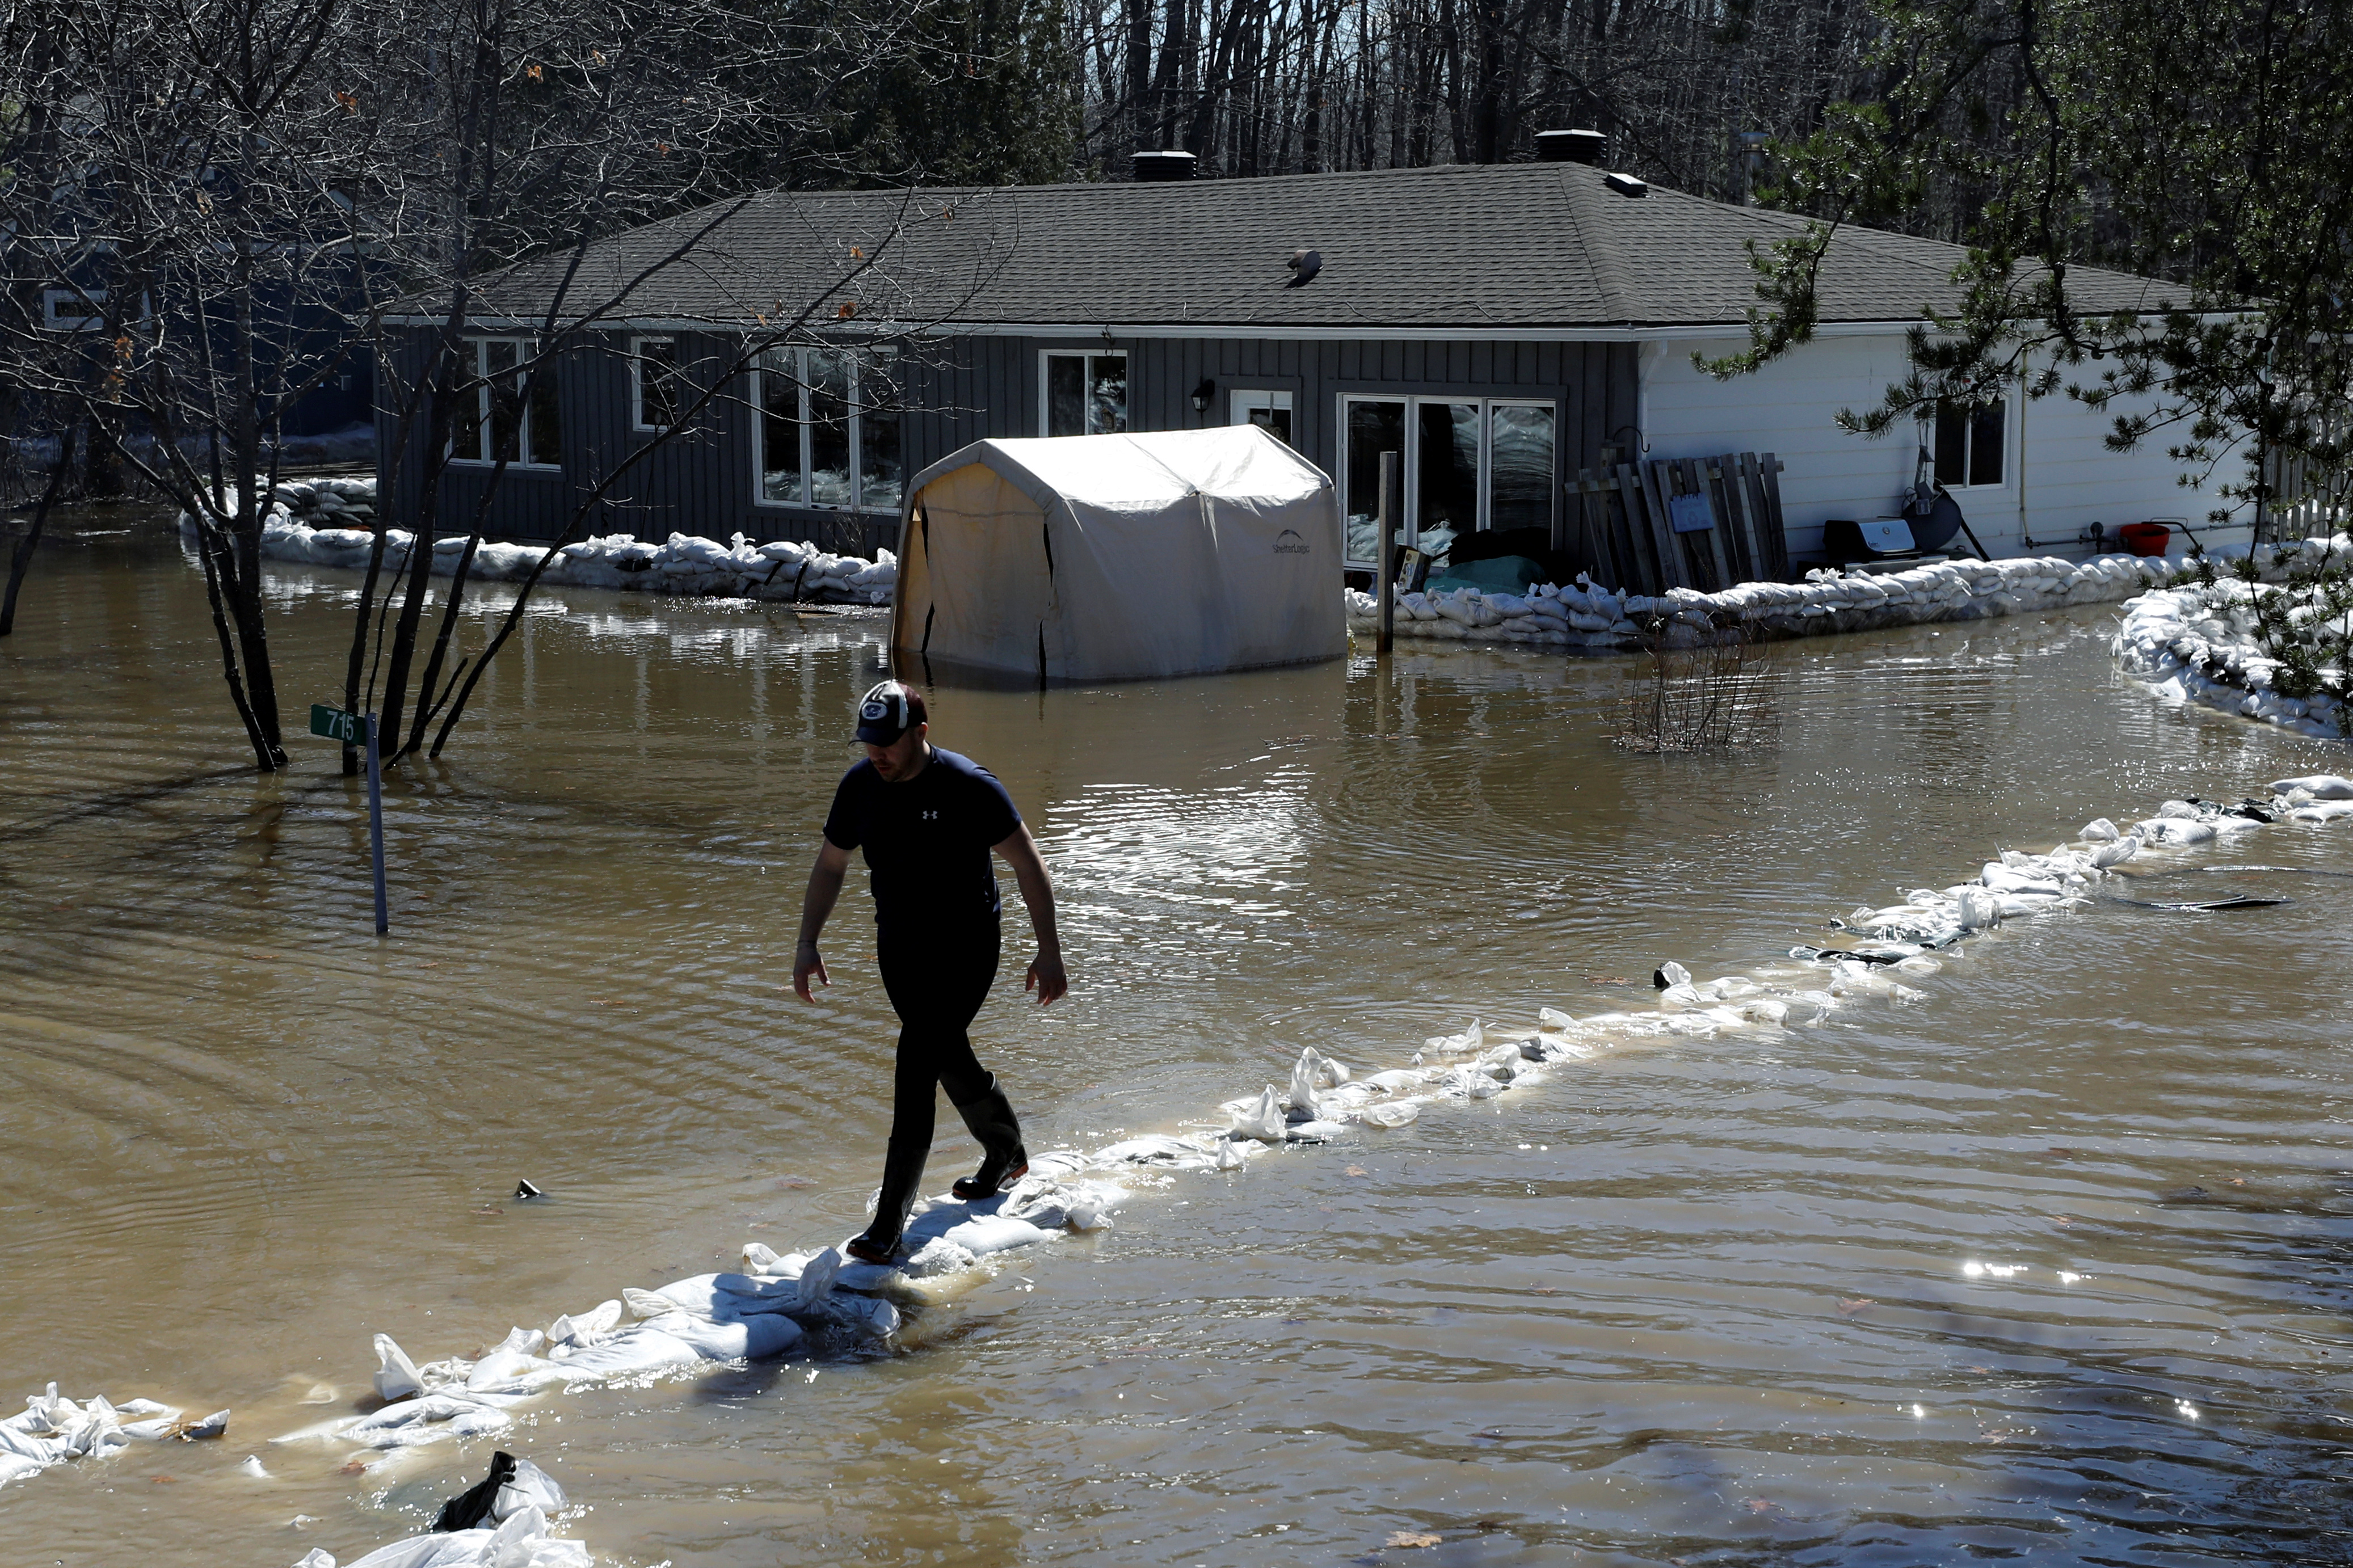 A man walks on a wall of sandbags outside a home in the flooded Constance Bay area in Ottawa, Ontario, Canada, April 30, 2019. REUTERS/Chris Wattie